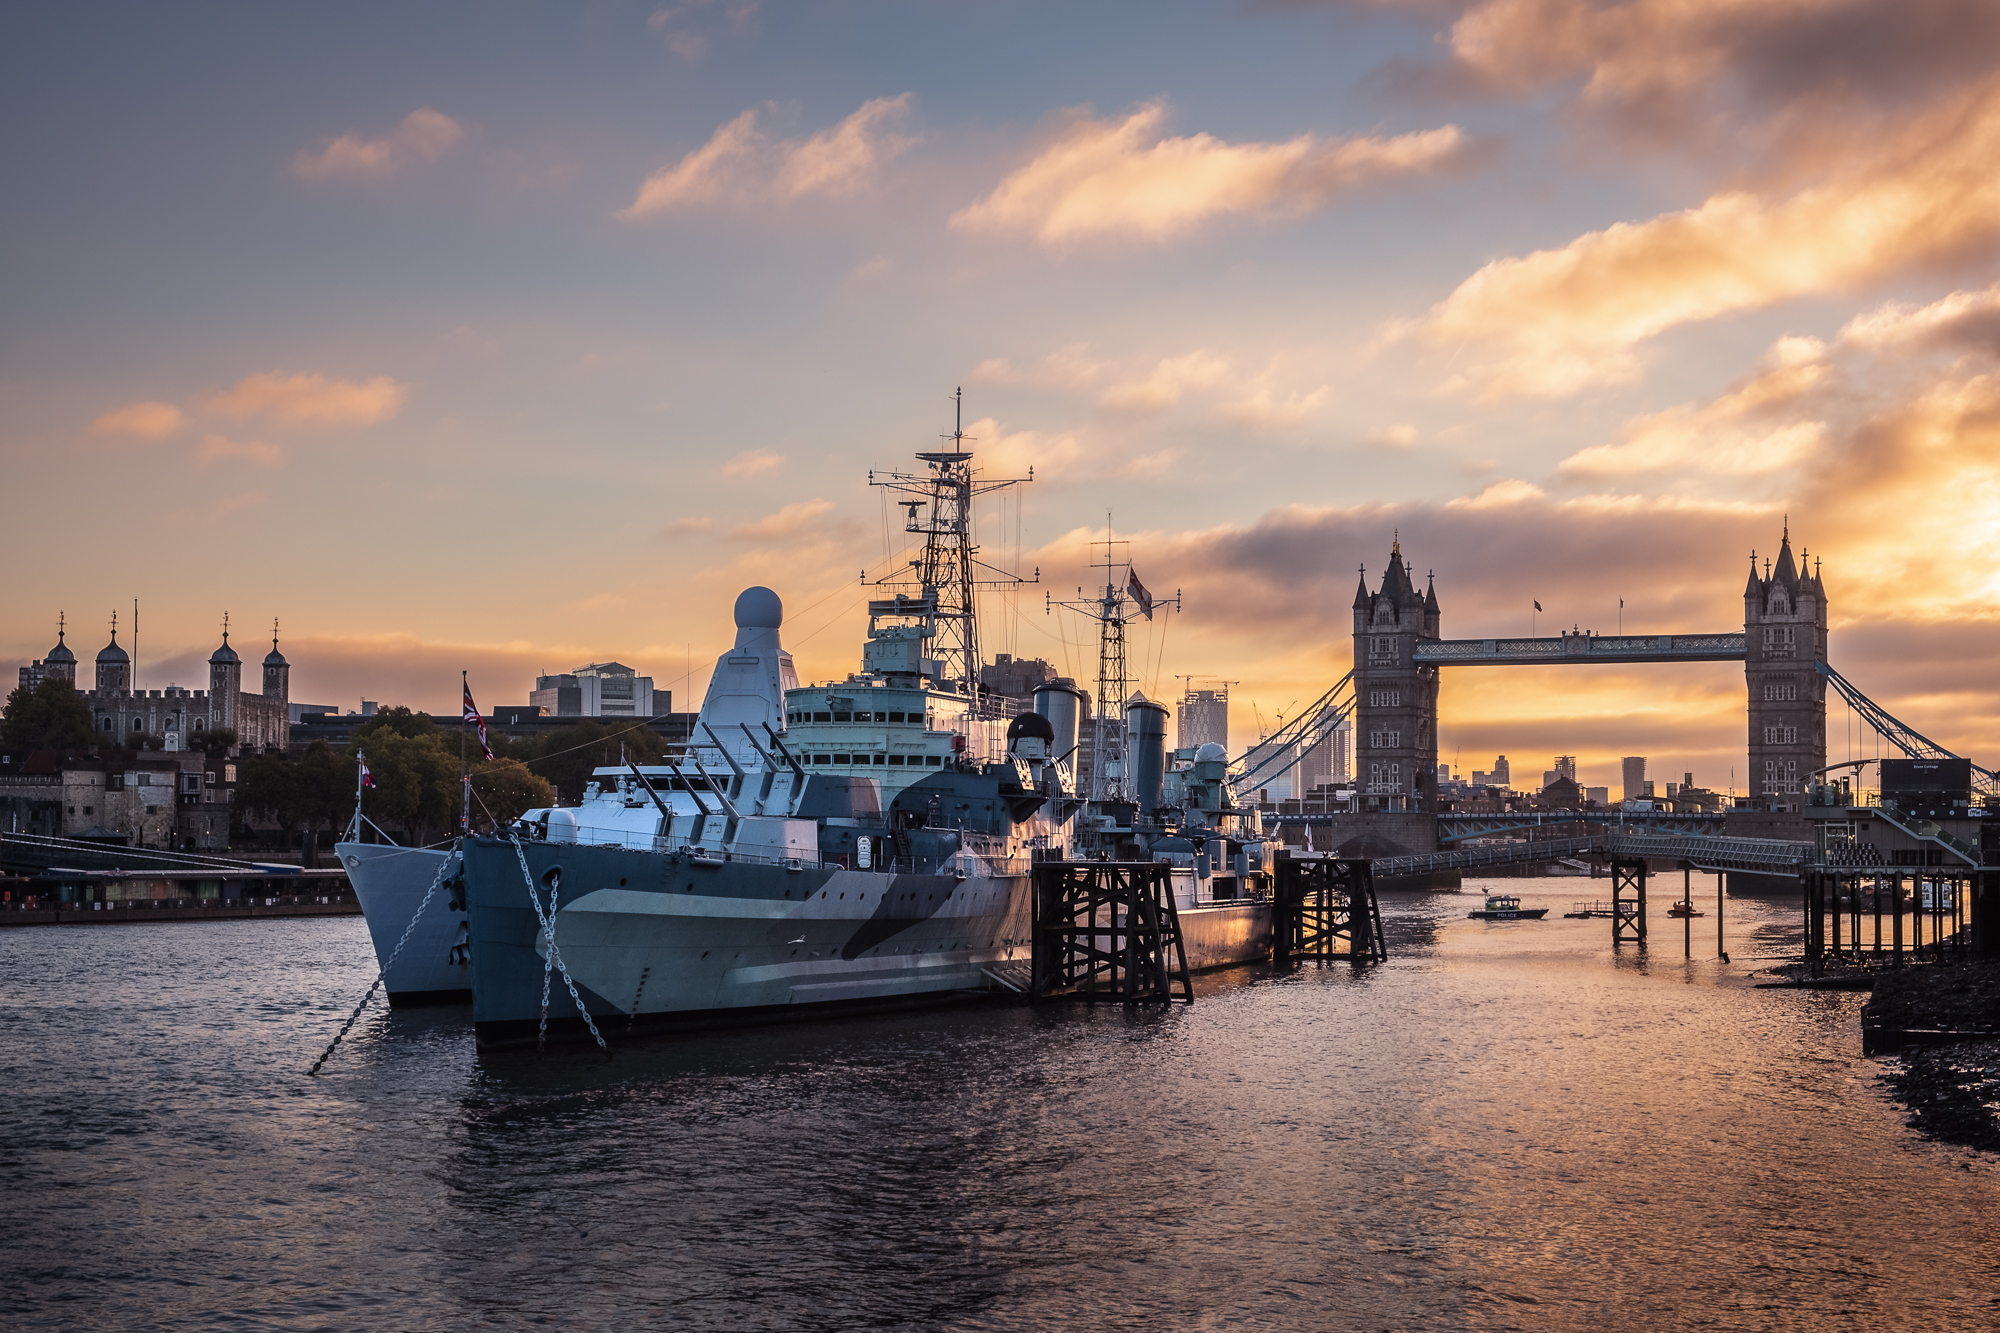 A photo of HMS Belfast and Tower Bridge at sunrise taken by Trevor Sherwin